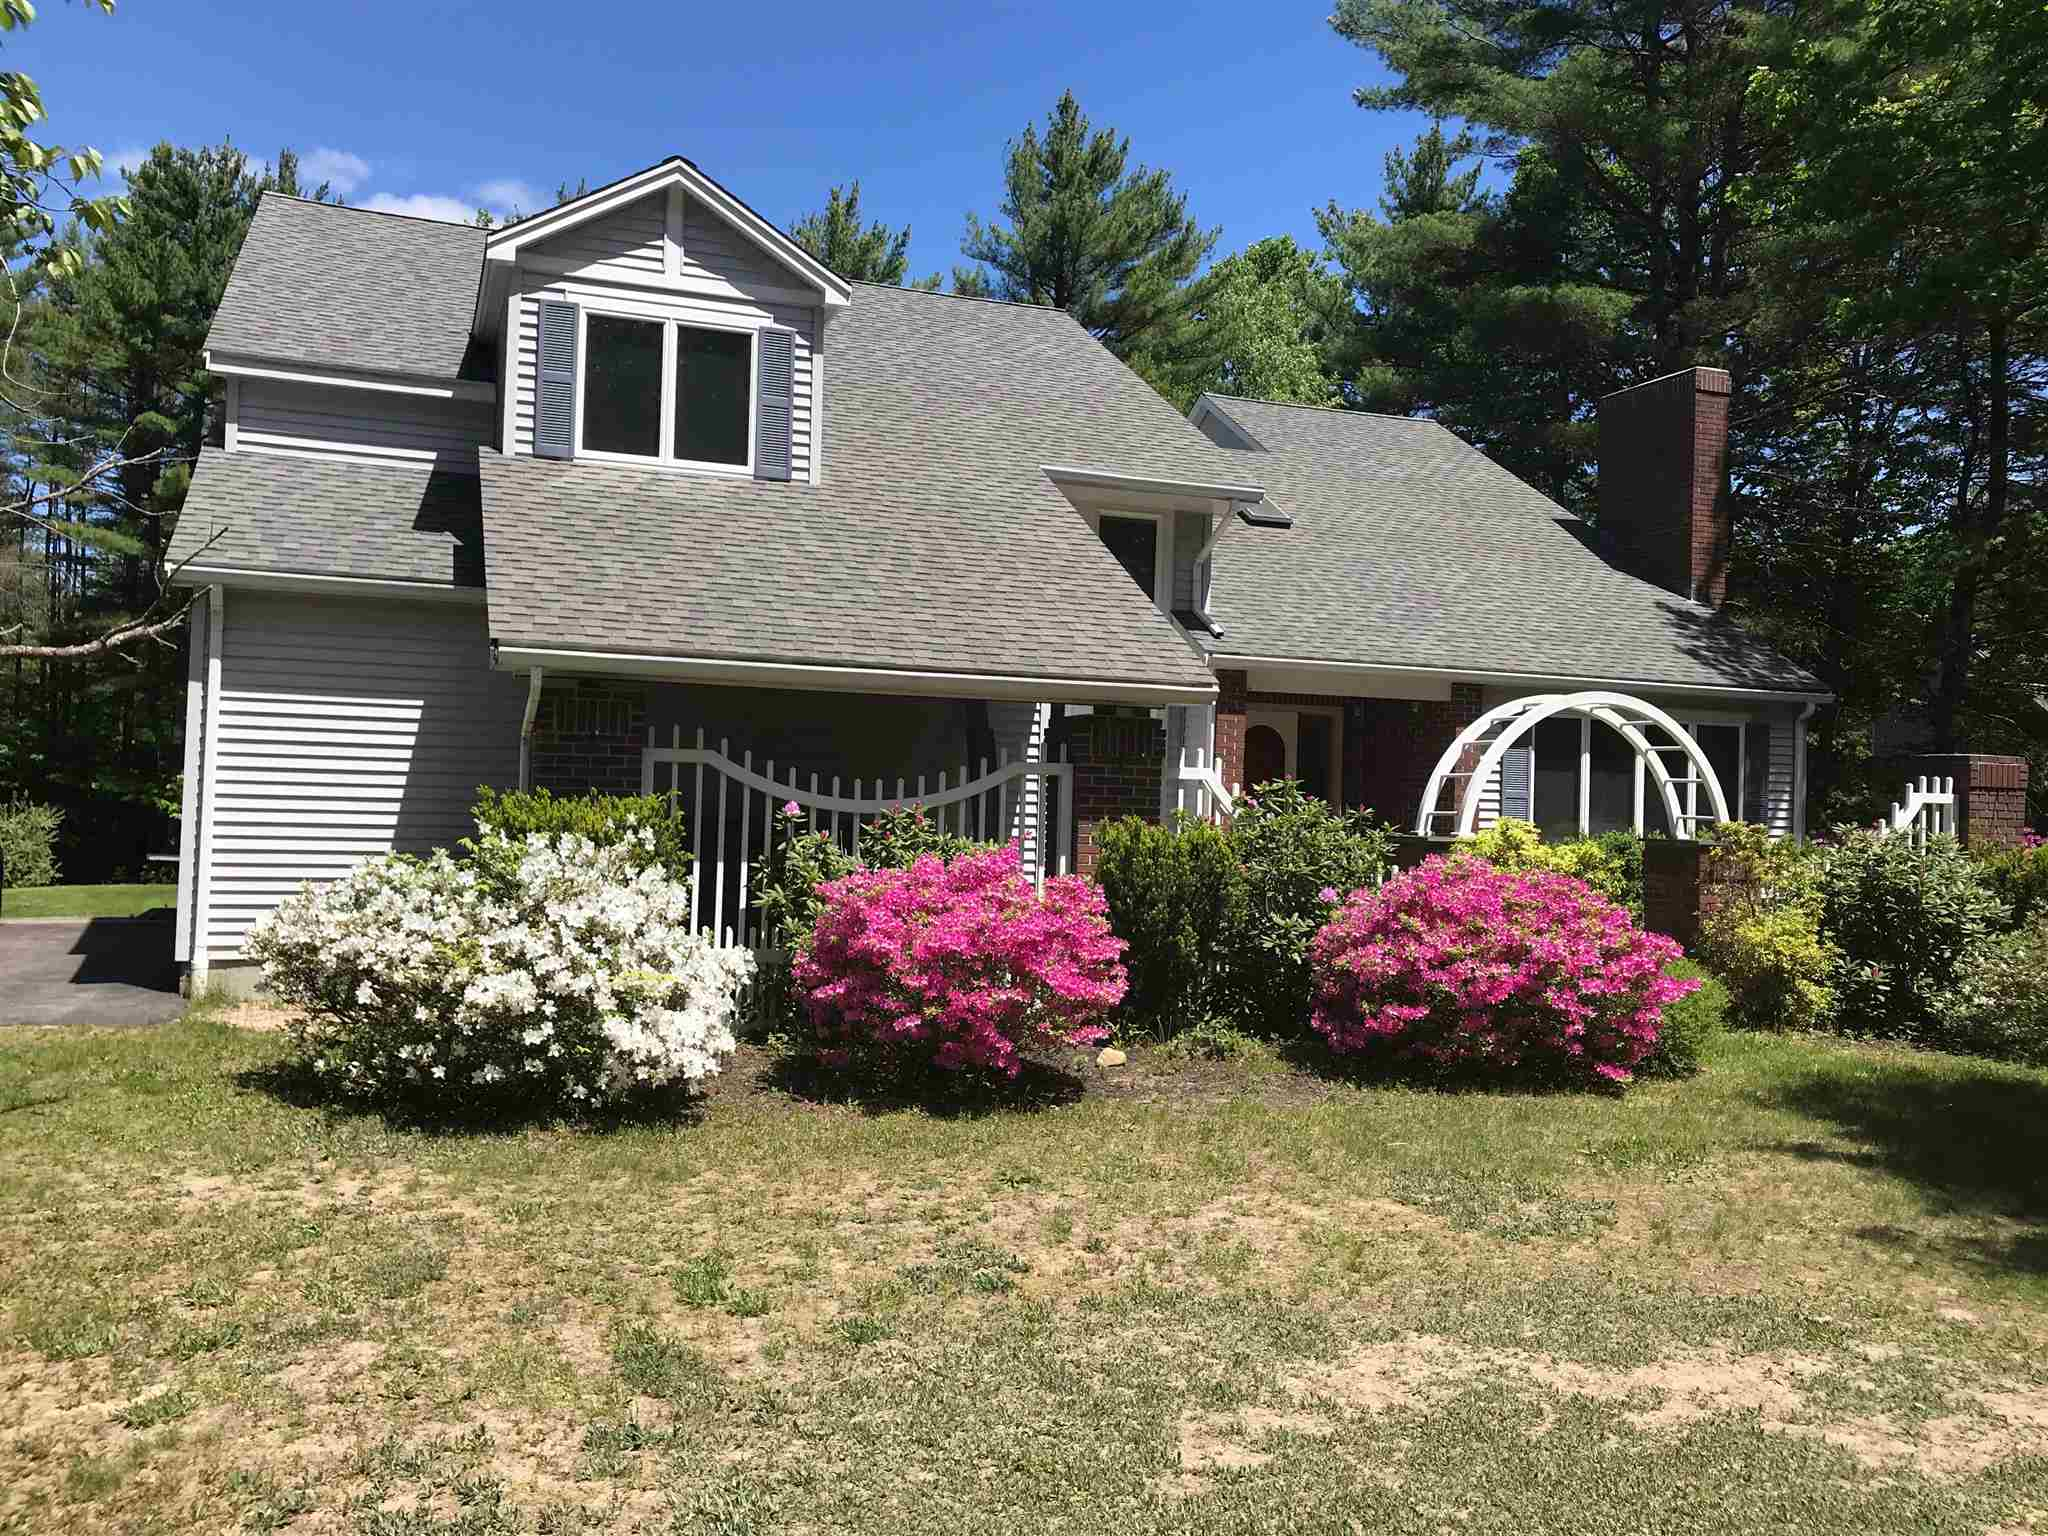 Photo of 24 Orchards Road Wolfeboro NH 03894